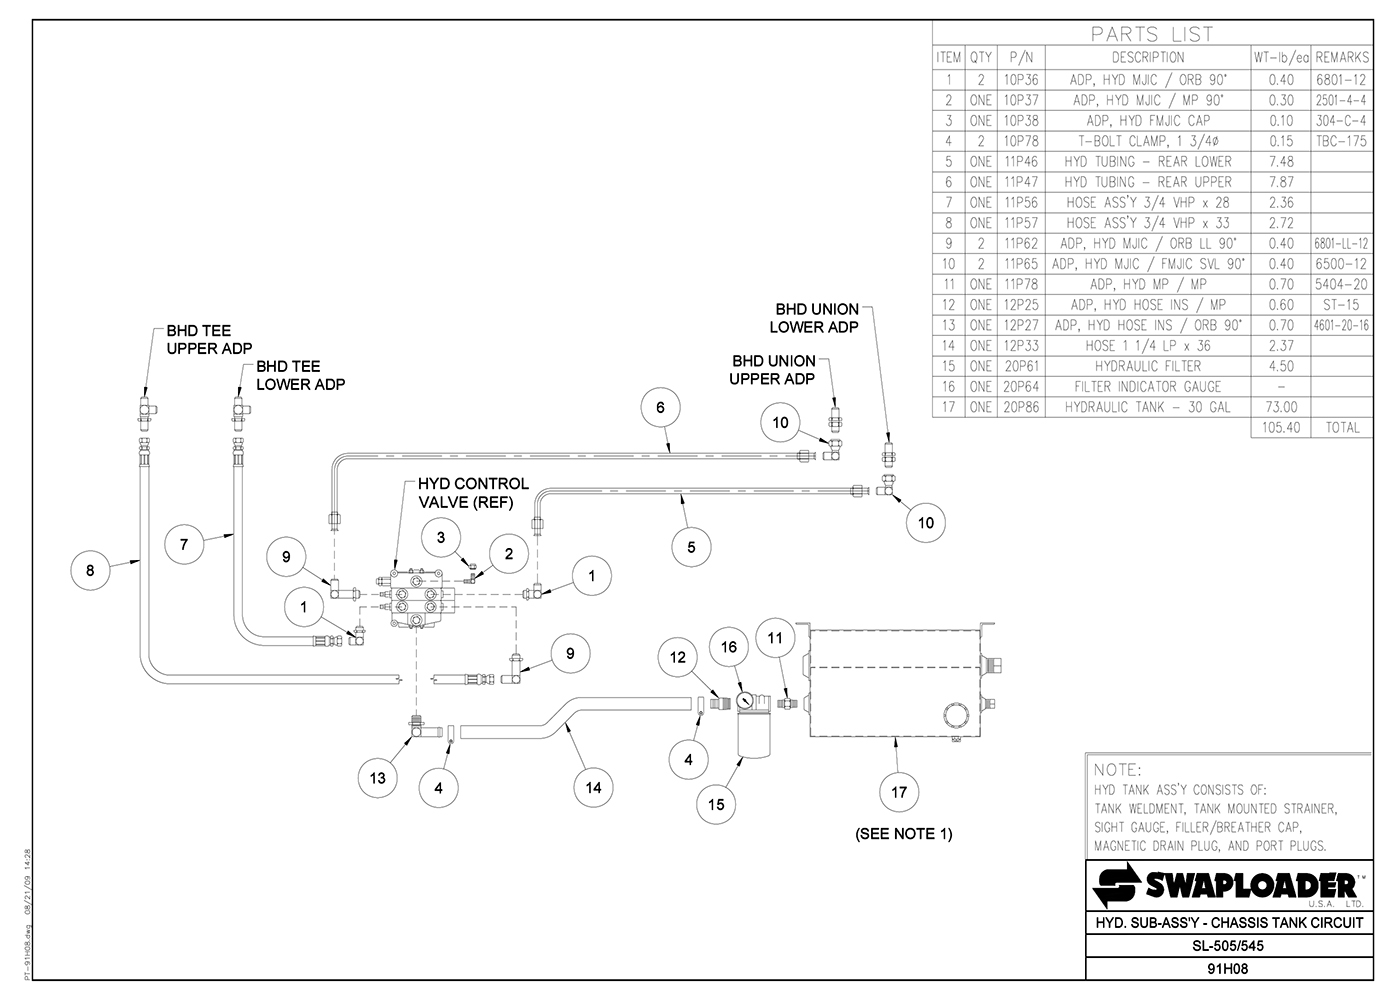 SL-505/545 Hydraulic Sub-Assembly (Chassis Tank Circuit)